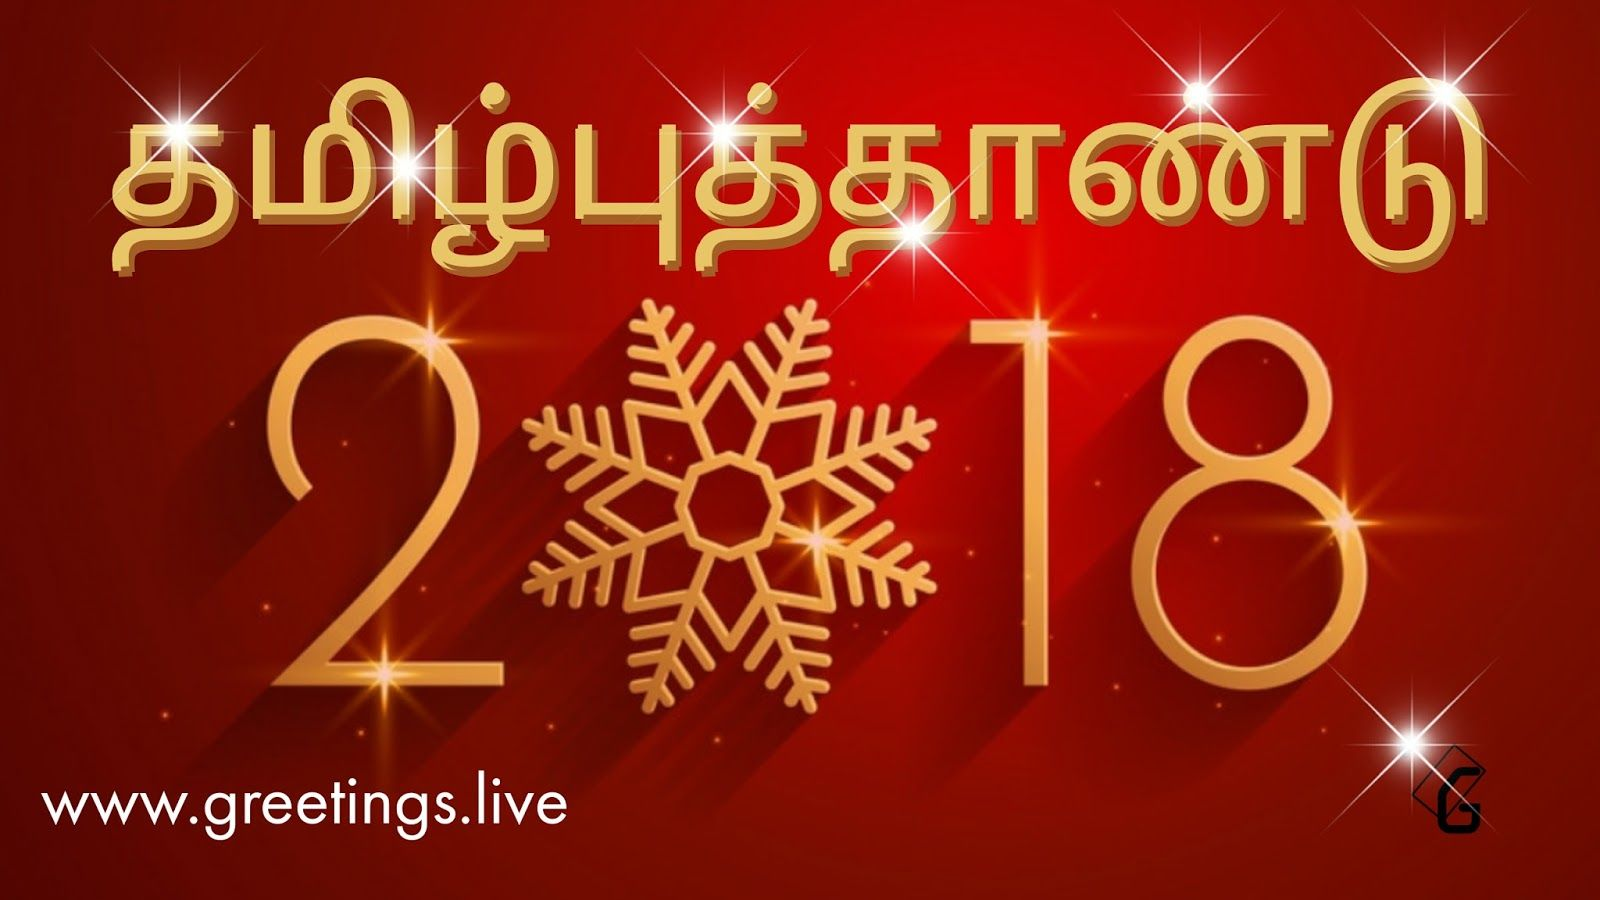 Sparkling Tamil New Year 2018 Hd Wishes